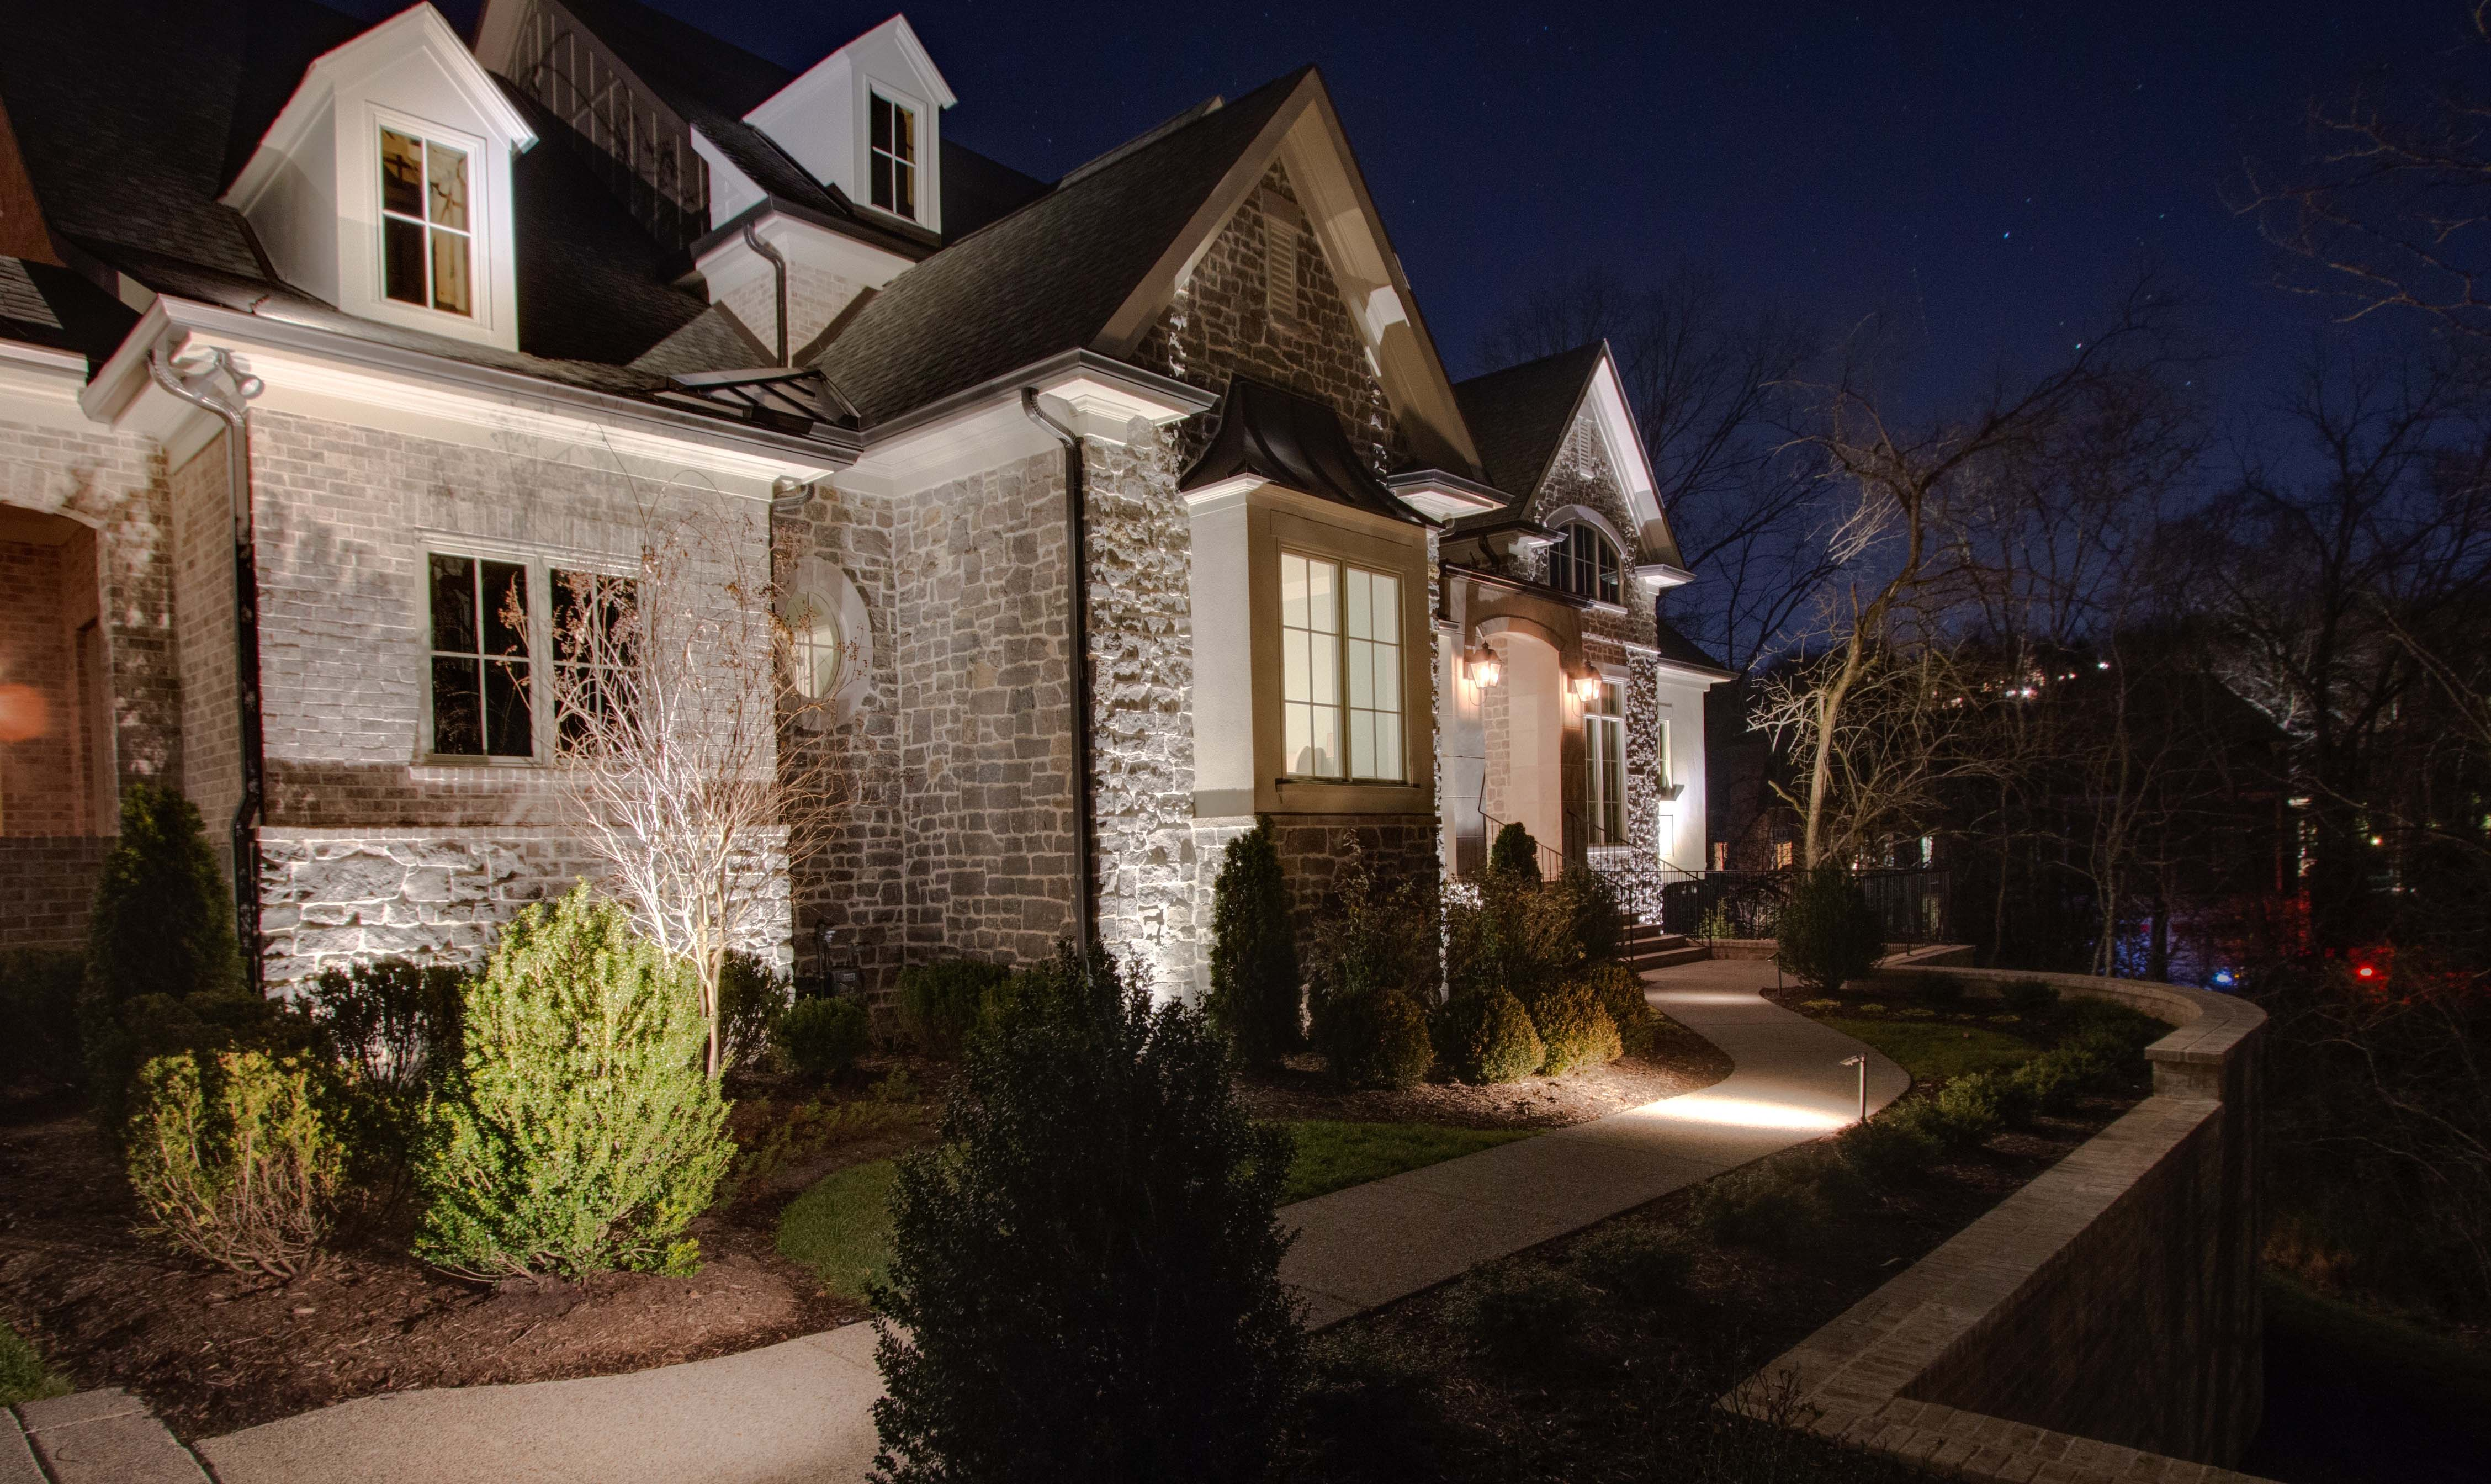 Our nashville outdoor lighting lca timers make springing forward for with the headache of setting your nashville outdoor lighting timers a thing of the past its impossible not to enjoy daylight savings time this year aloadofball Choice Image